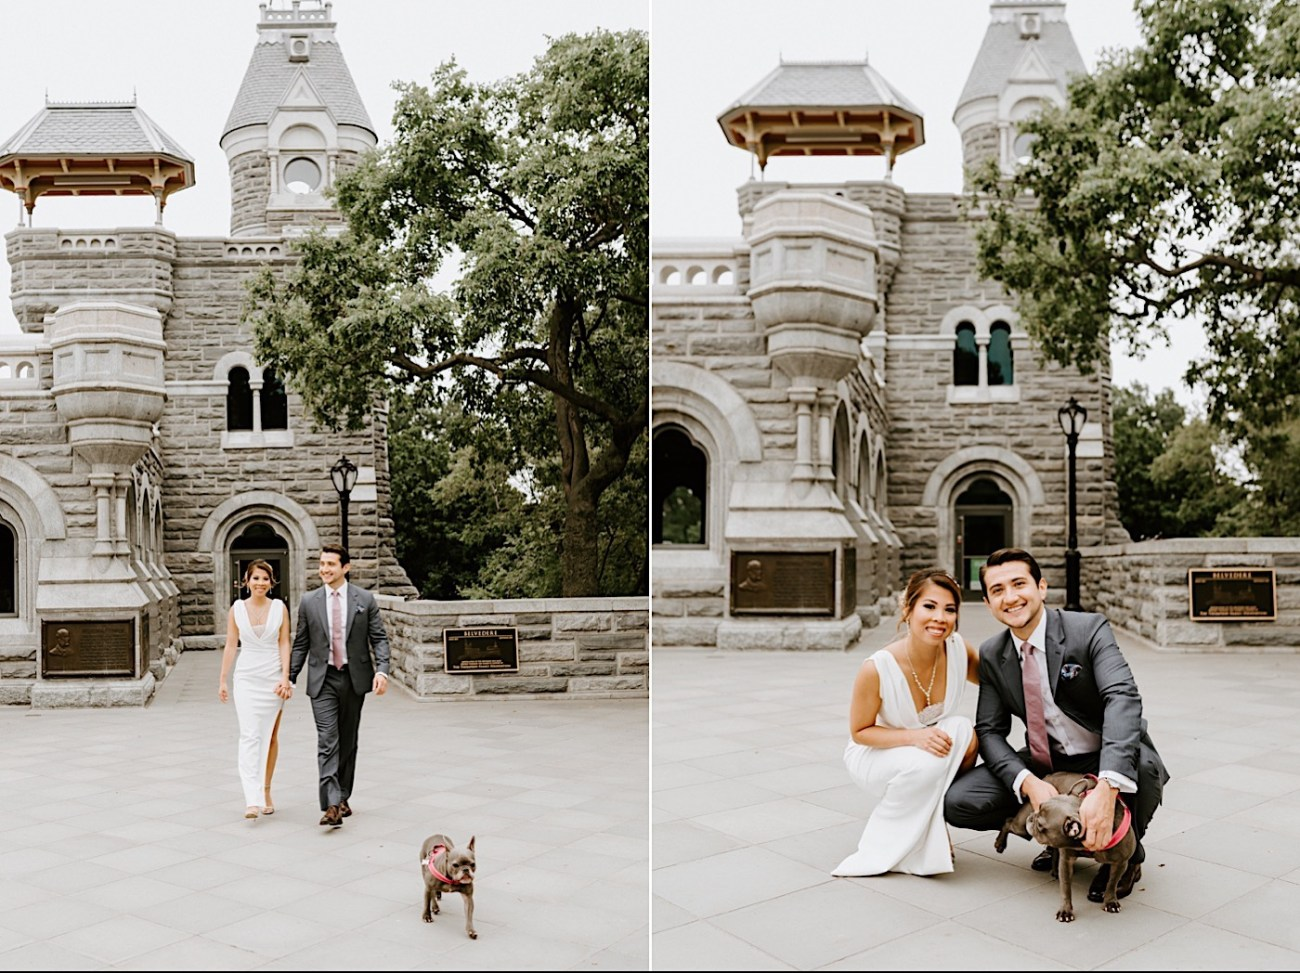 Central Park Elopement NYC Wedding Photographer Central Park Wedding Photos 05